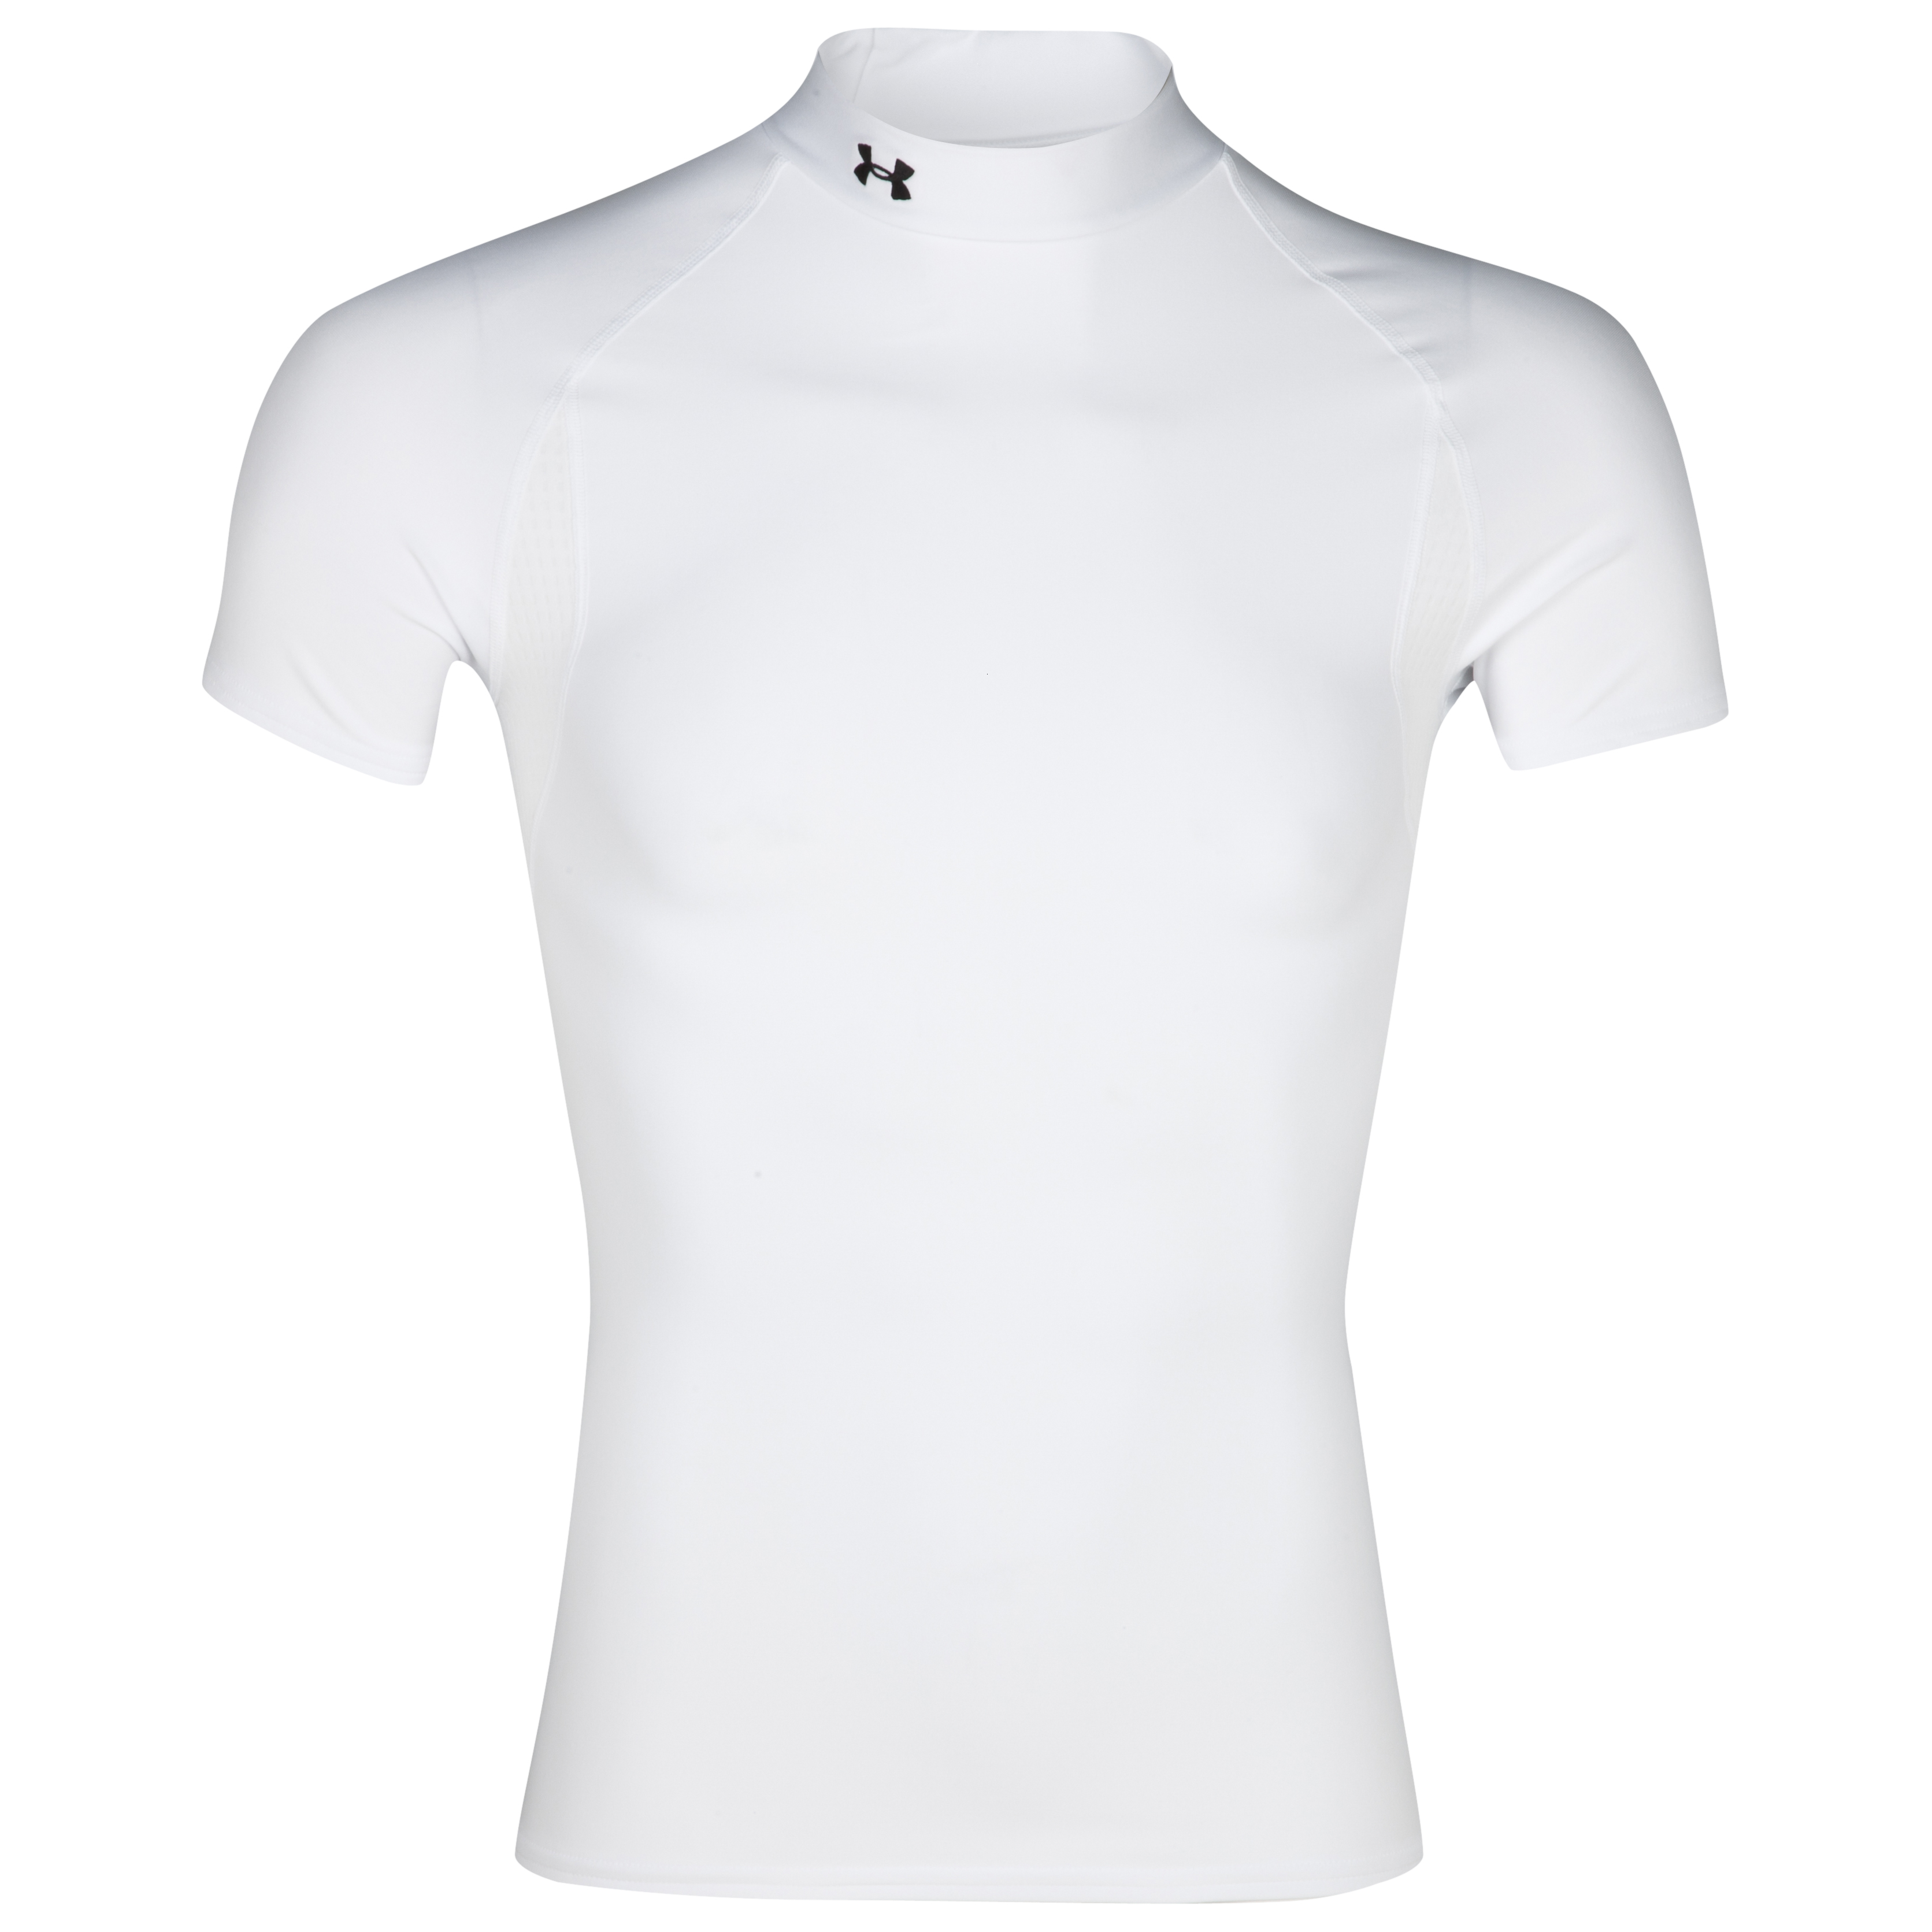 Under Armour Coldgear Short Sleeve Evo Mock Top - White